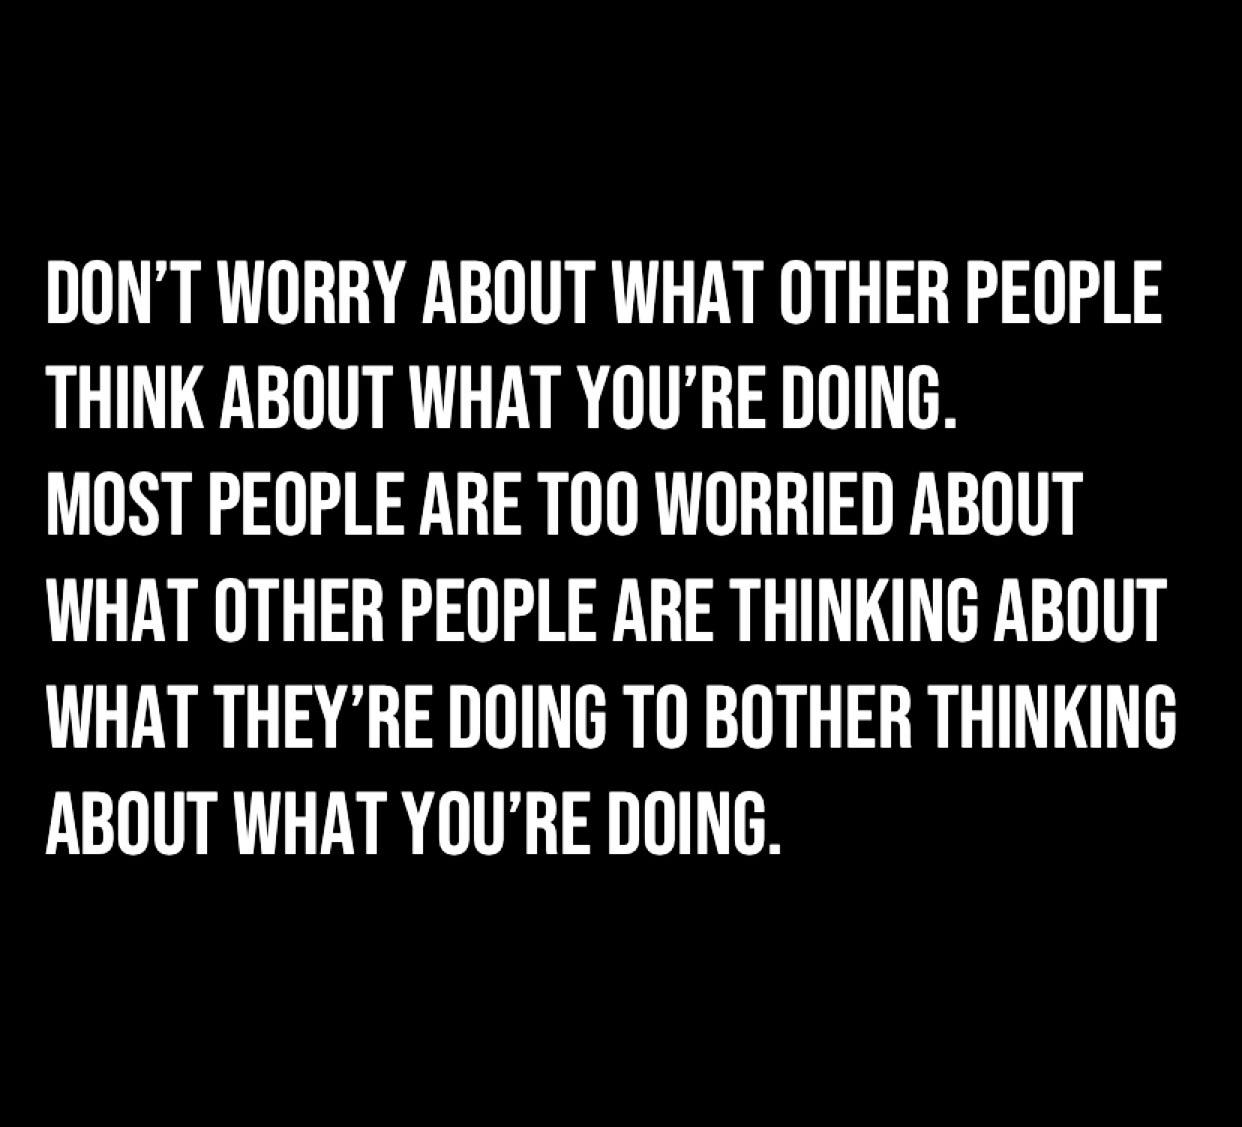 [image] here's a good reason not to worry about what anyone is thinking about you.